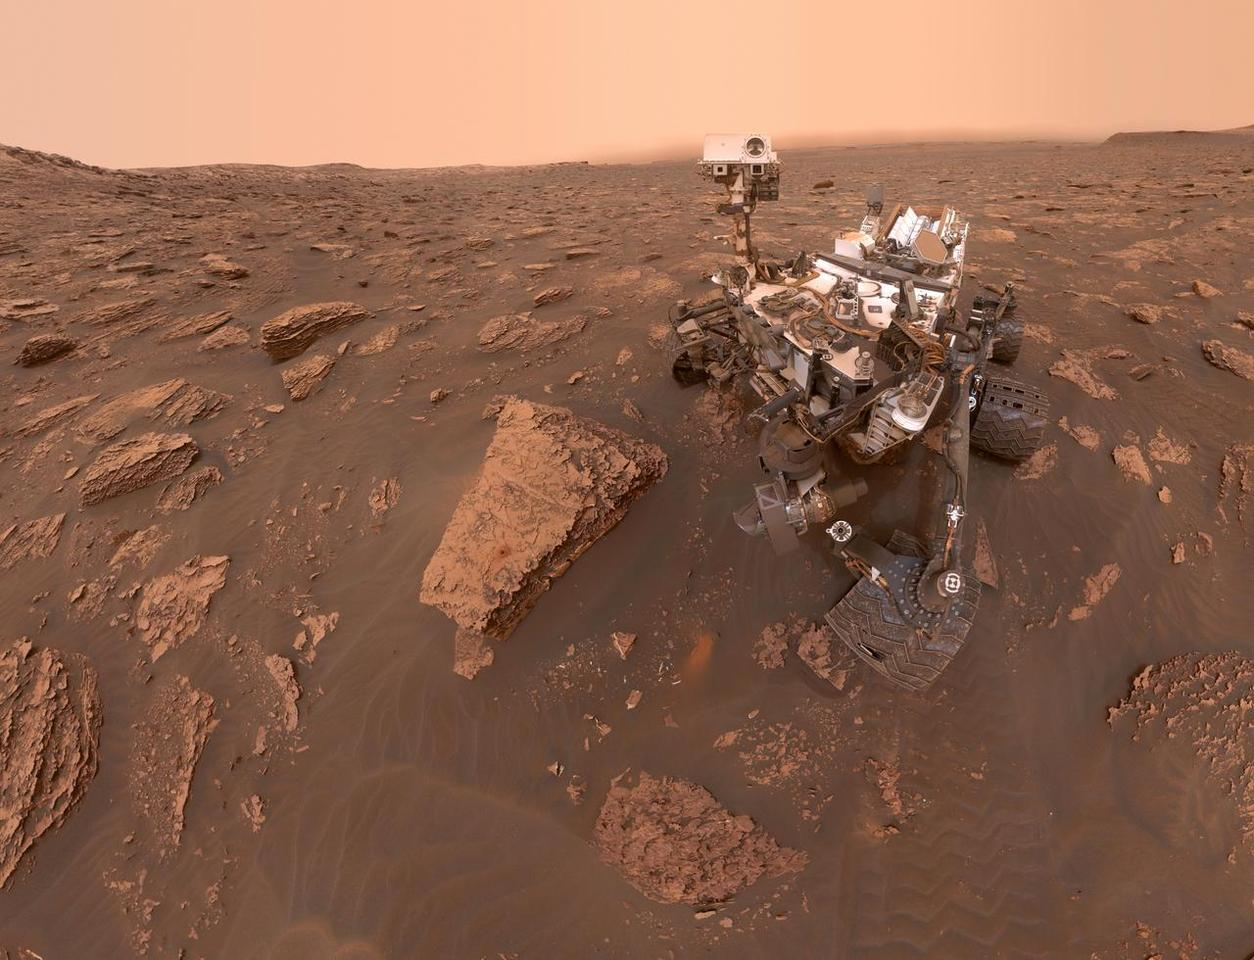 A photo of Curiosity taken by the rover itself on June 15, 2018